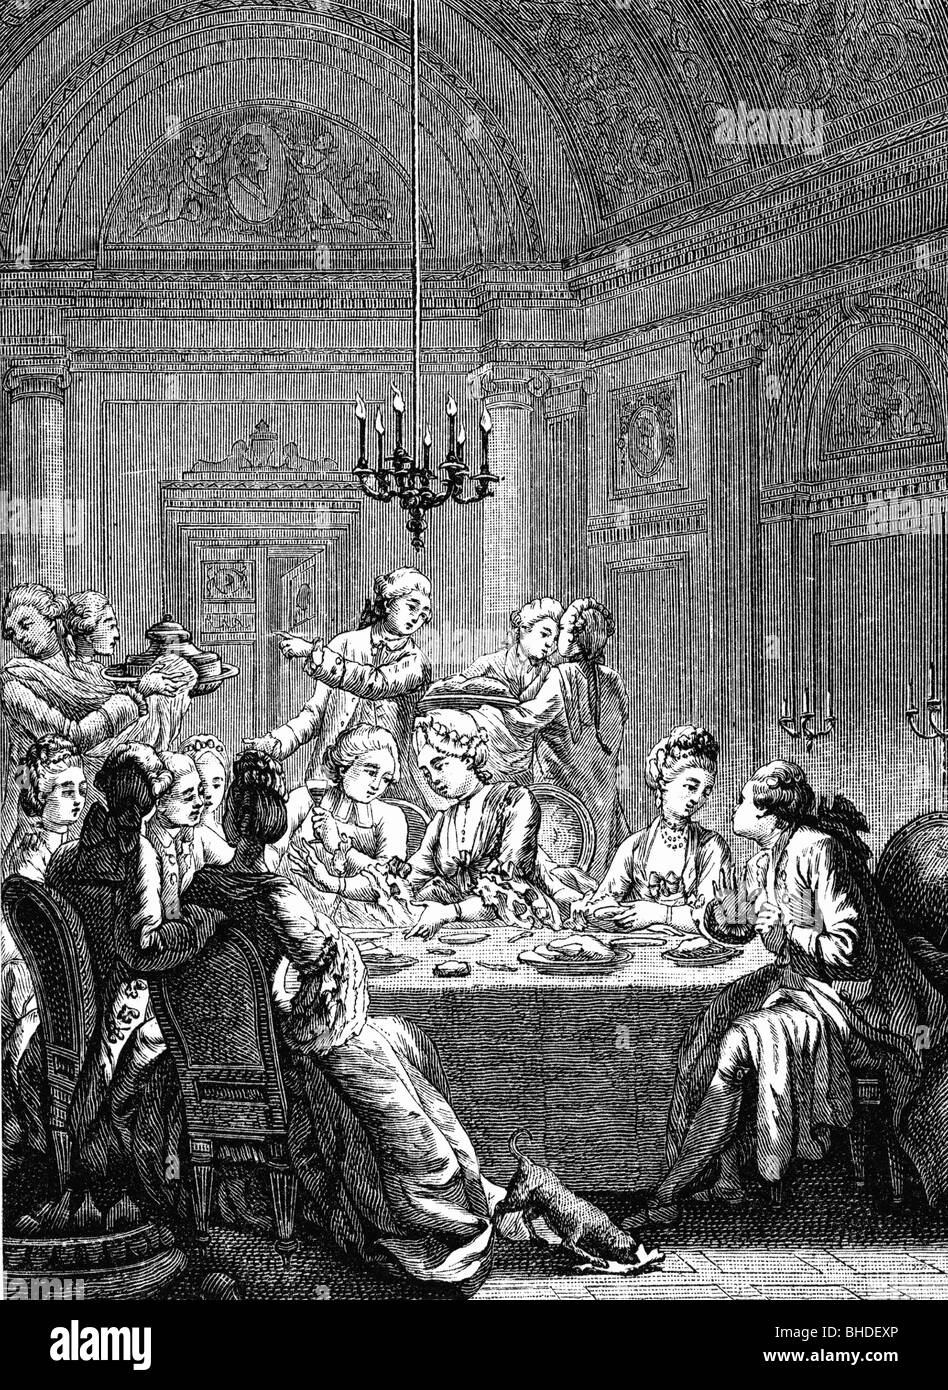 festivity, ball and society, dinner, France, 18th century, engraving after Masquelier, historic, historical, candelier, - Stock Image